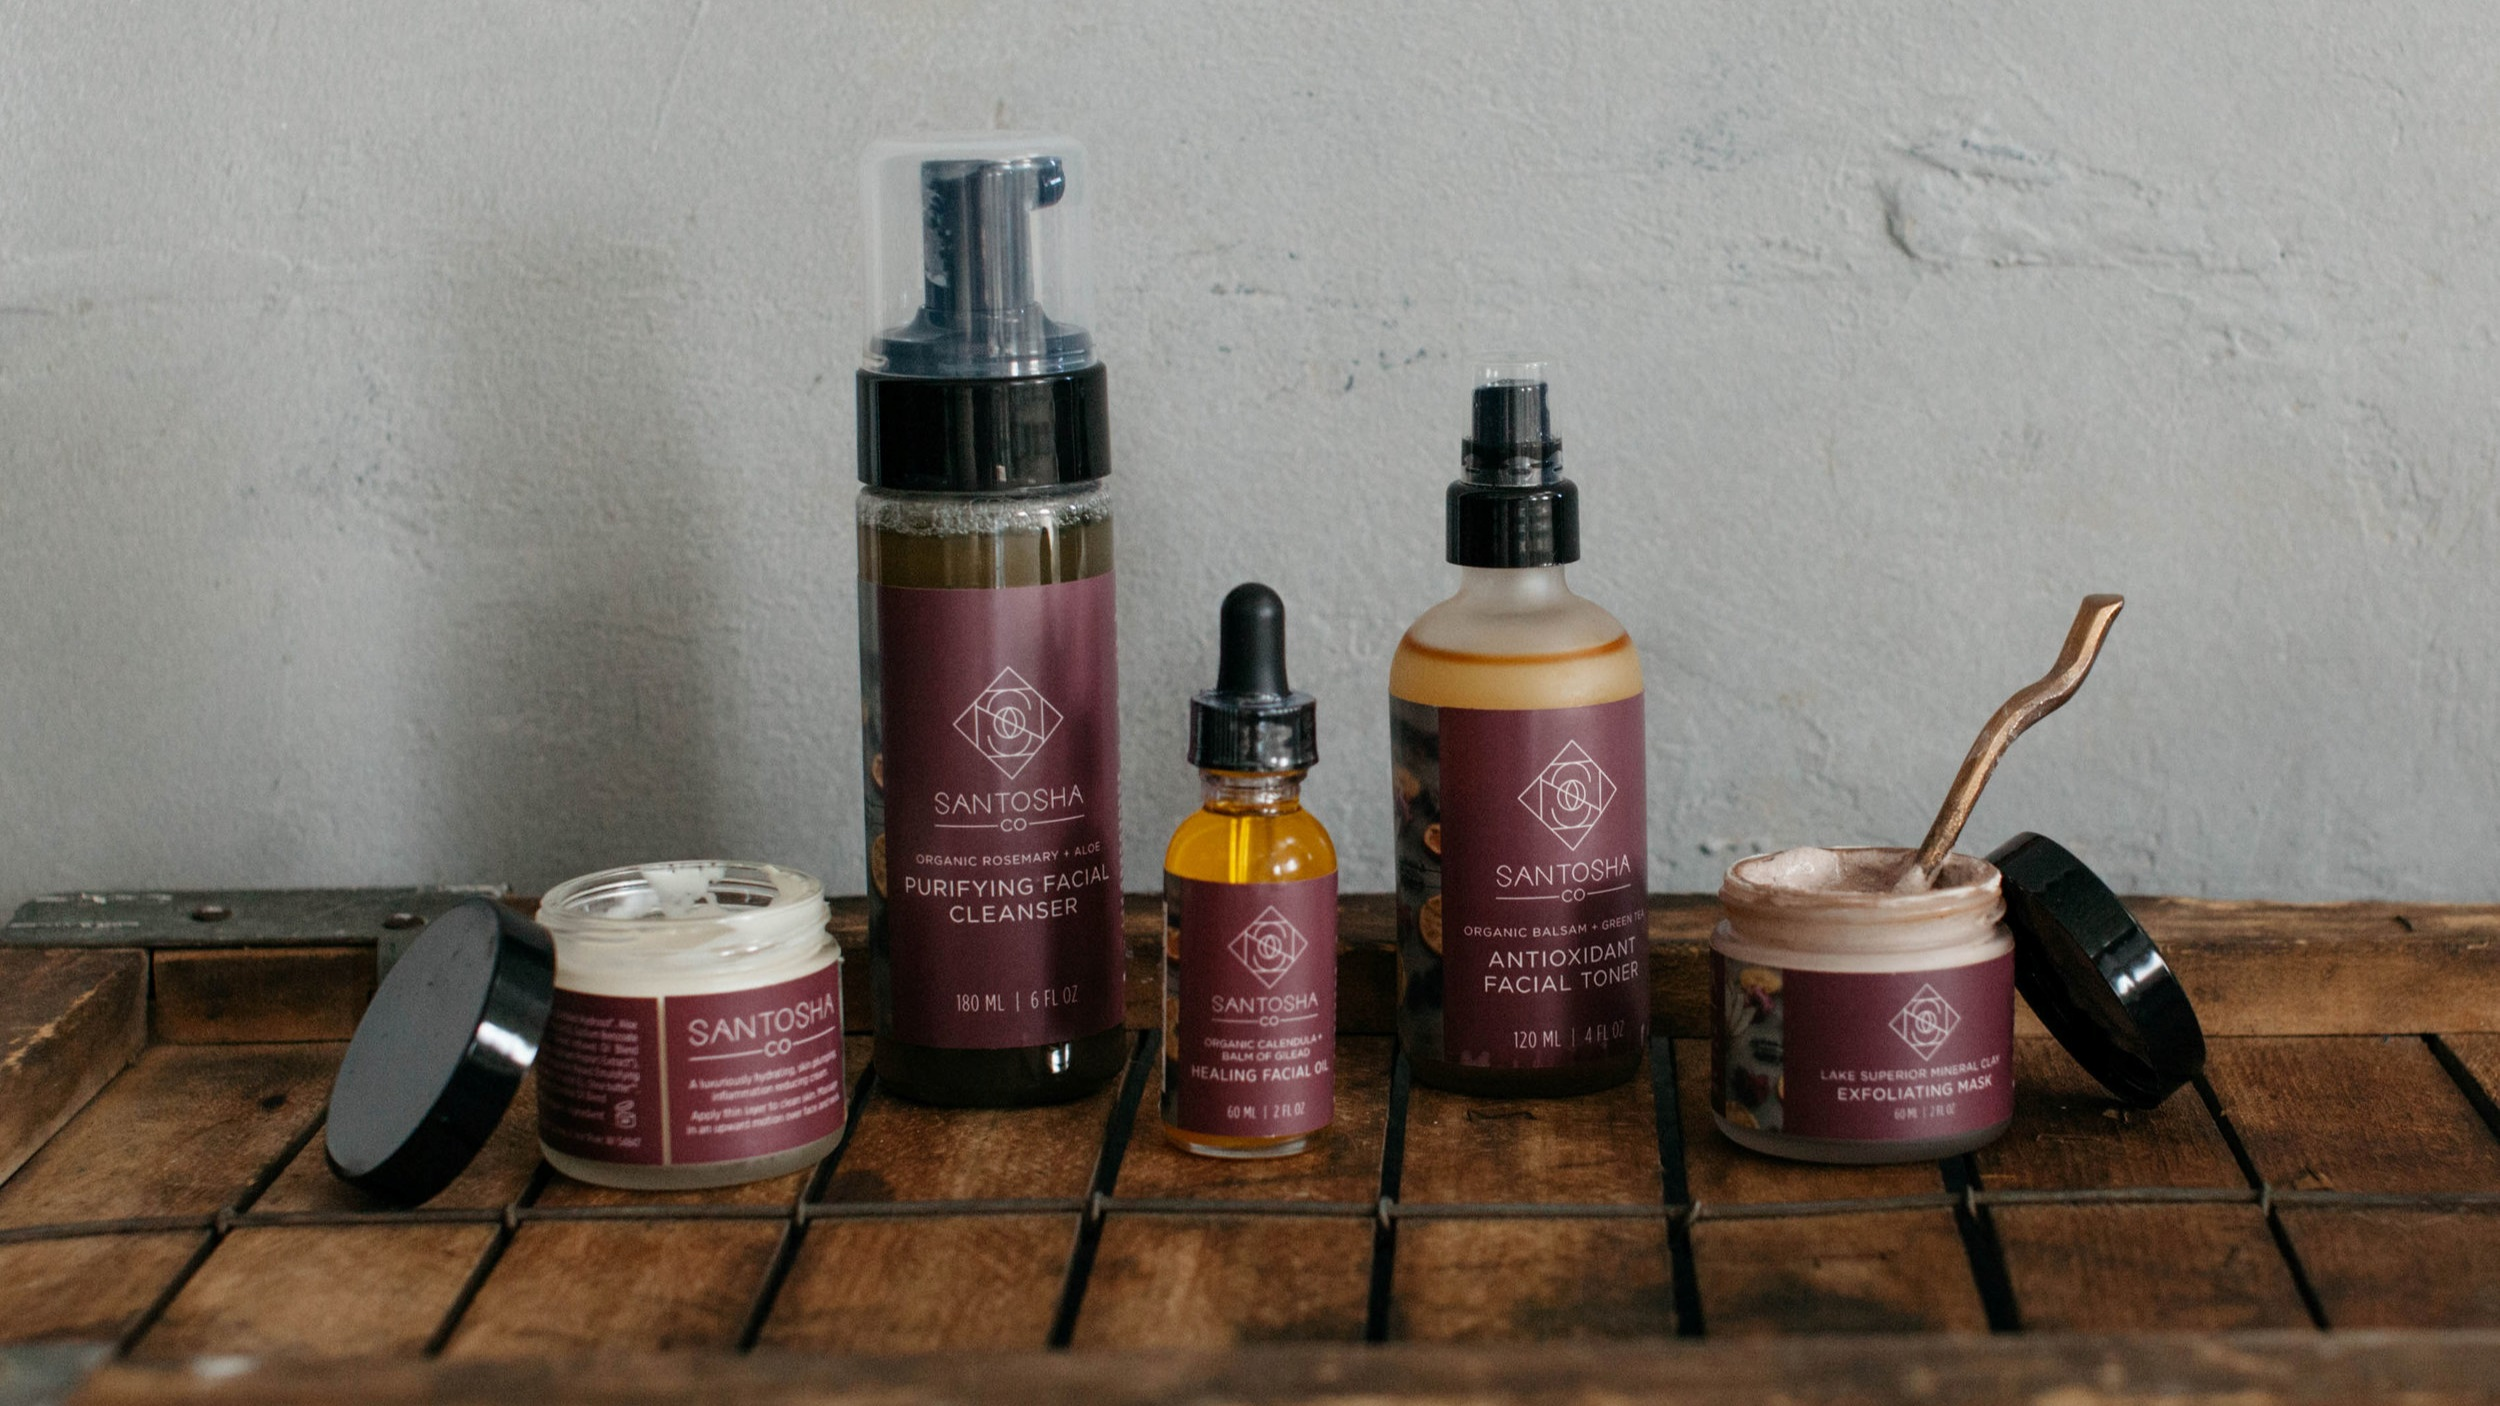 Who We Are: - We bring you products that are organic, safe, non-toxic, and sustainably foraged. Everything we make is made in small batches, and is highly effective. We believe in results you can see and feel, ingredients that are safe for everyone, and the power of nature to bring these results to you.